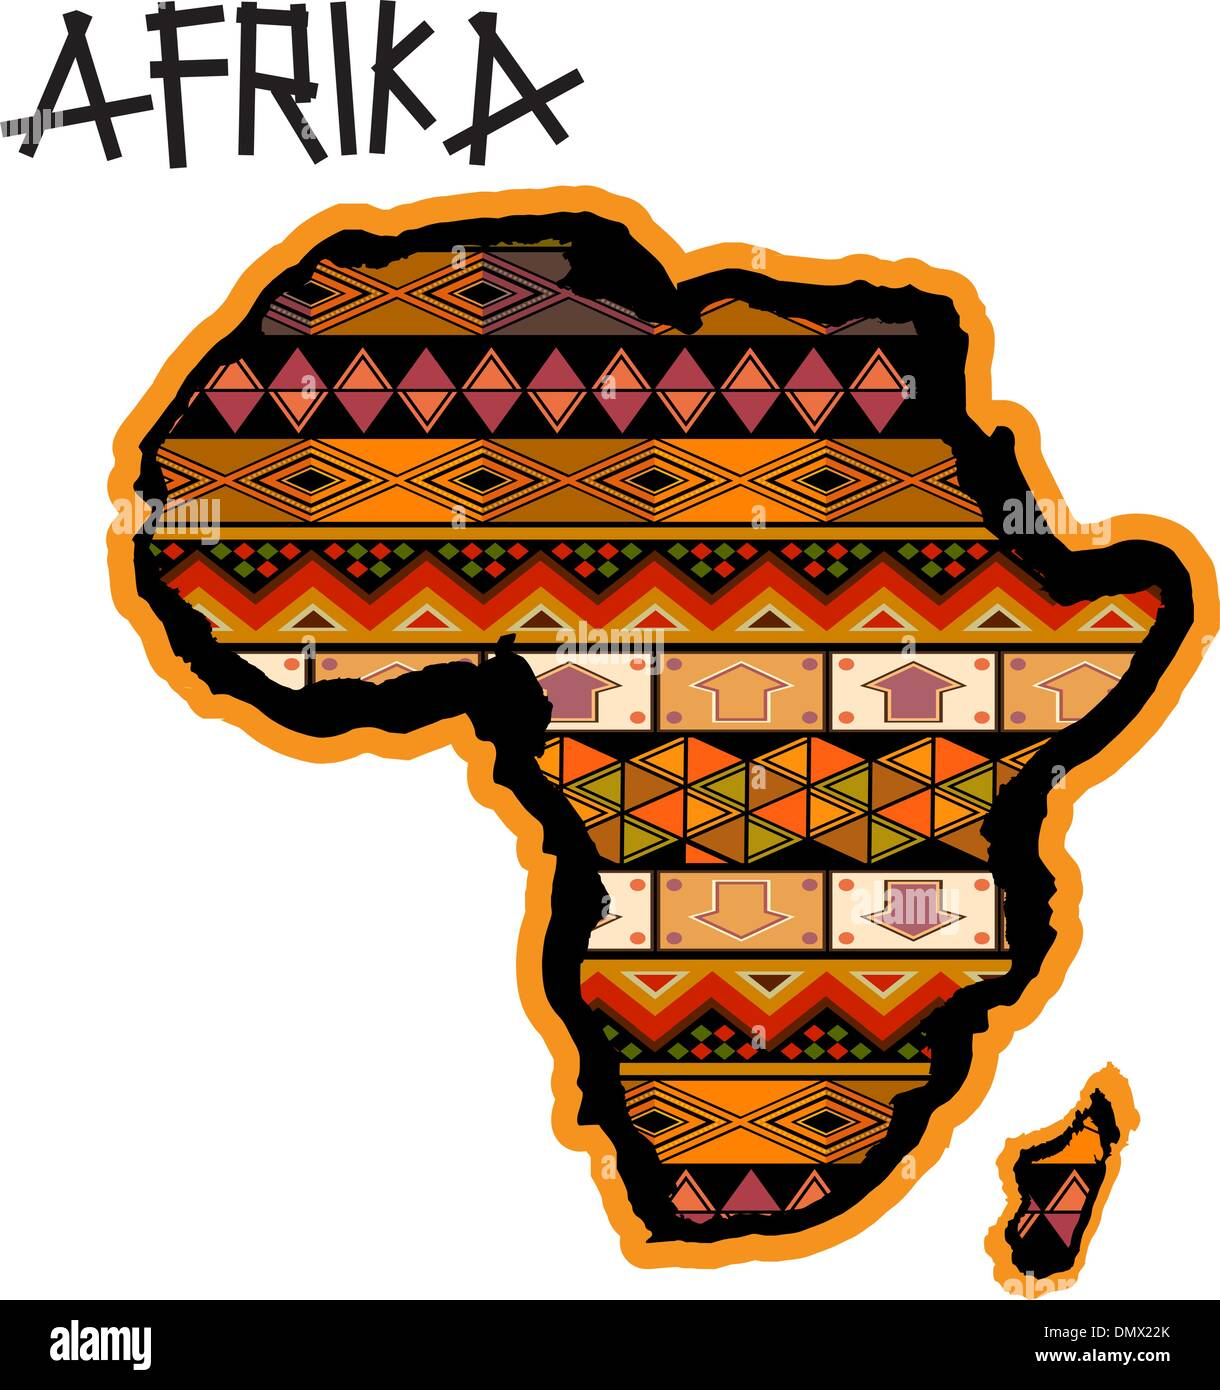 Map Of Africa Art.Africa Traditional Map Stock Vector Art Illustration Vector Image